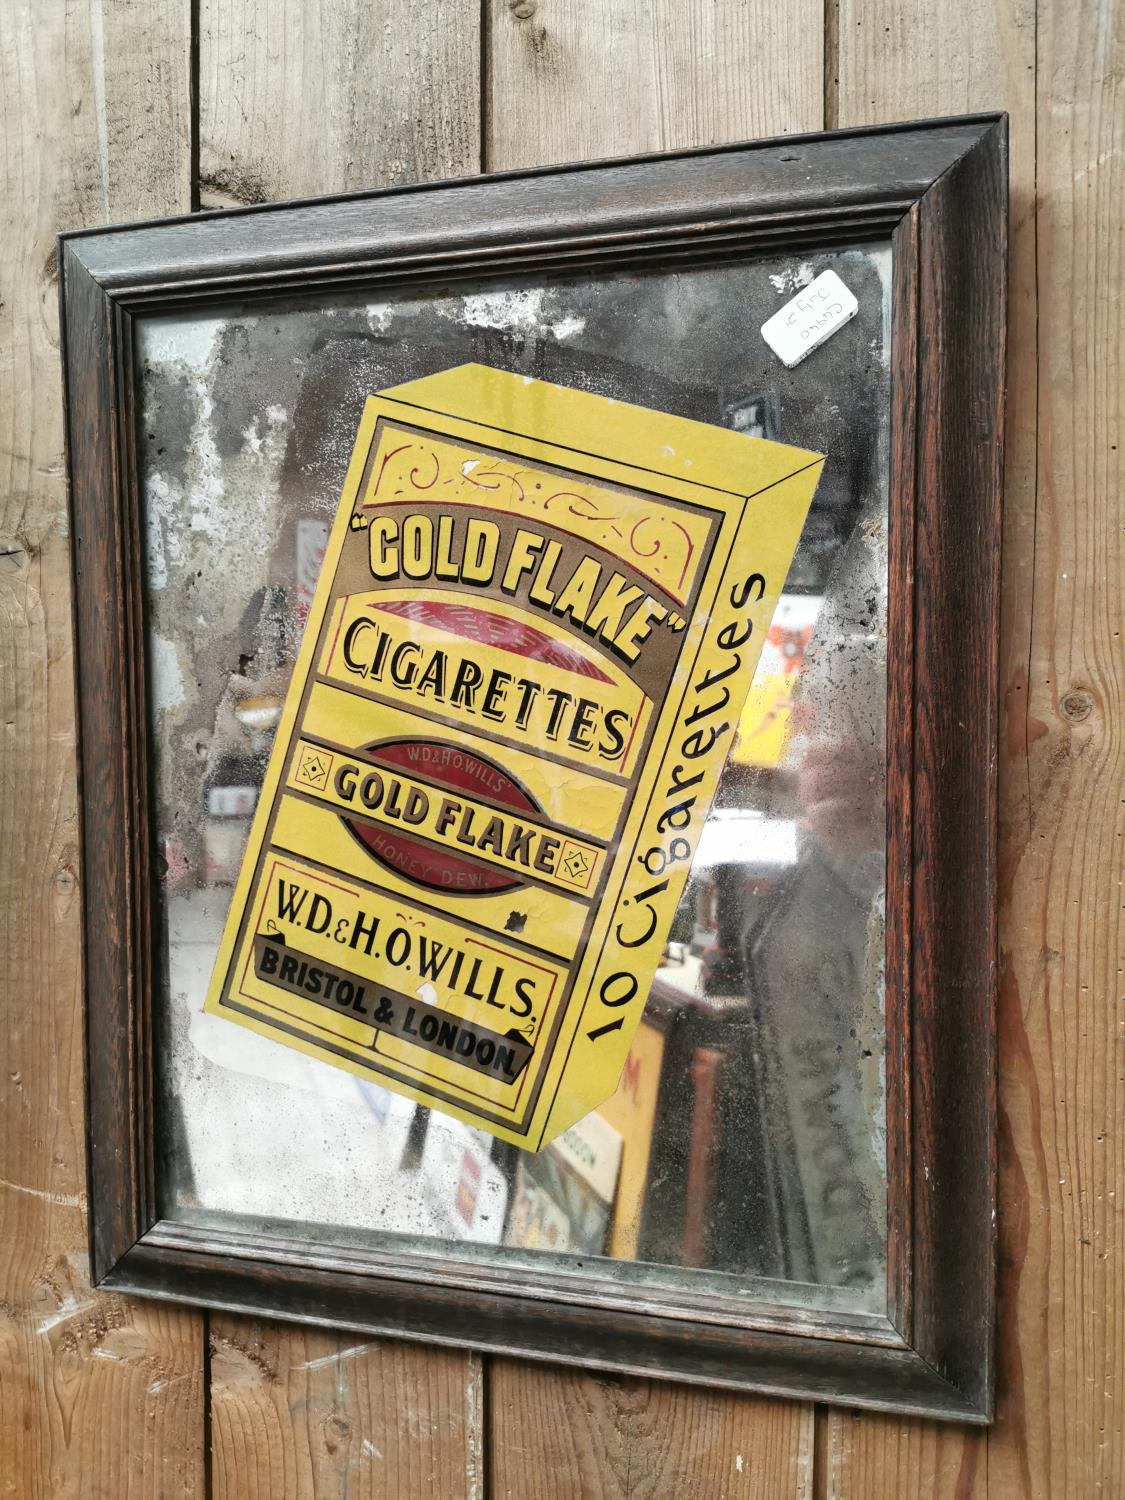 Will's Gold Flake advertising mirror.